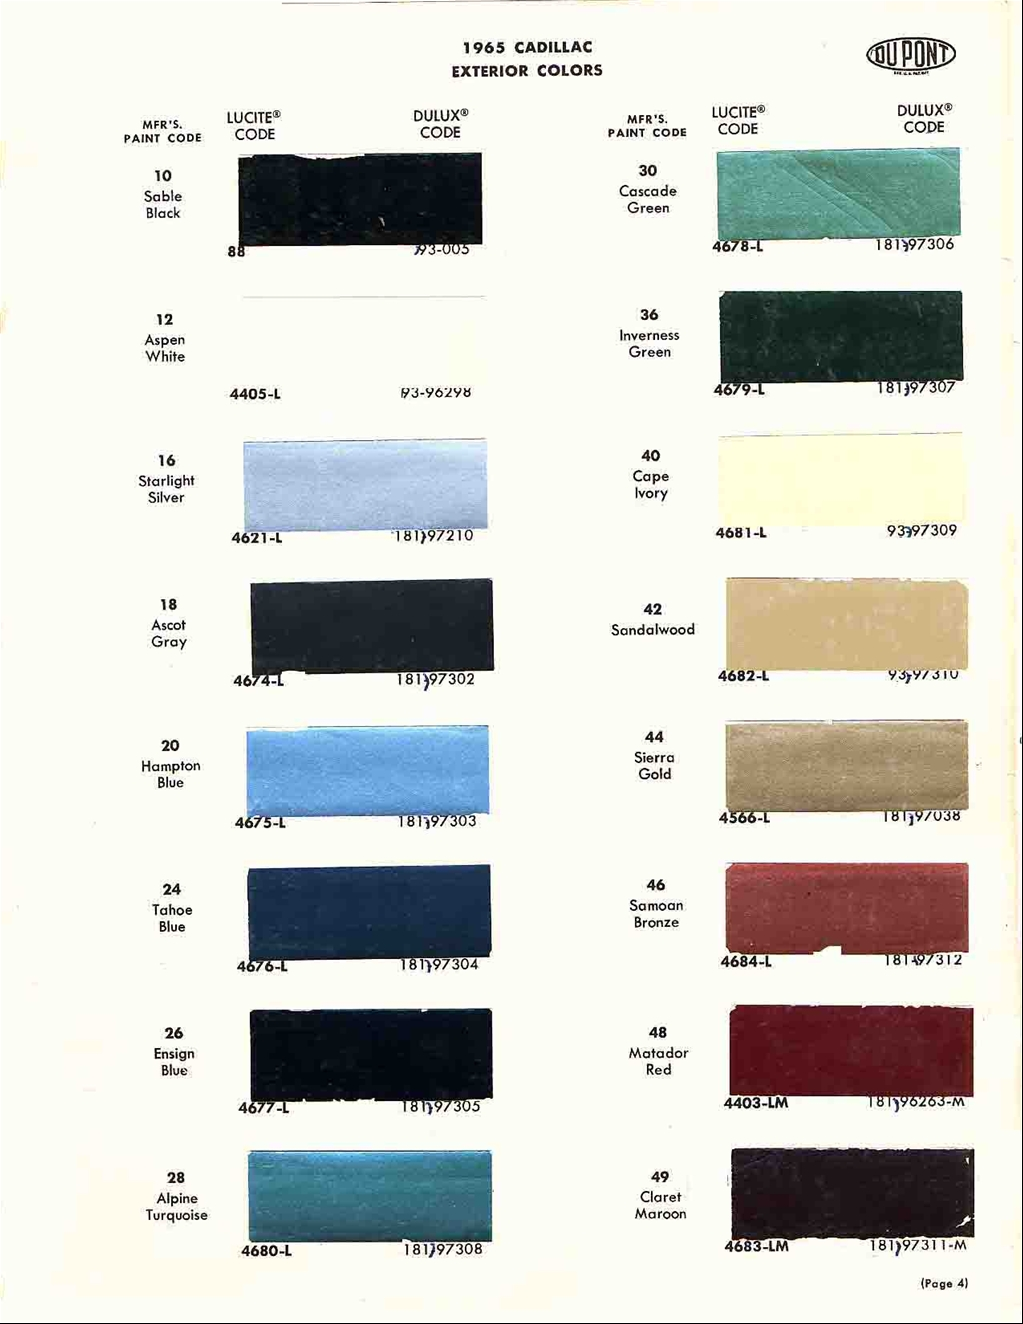 Official cadillac color names and paint codes page 4 re official cadillac color names and paint codes nvjuhfo Images